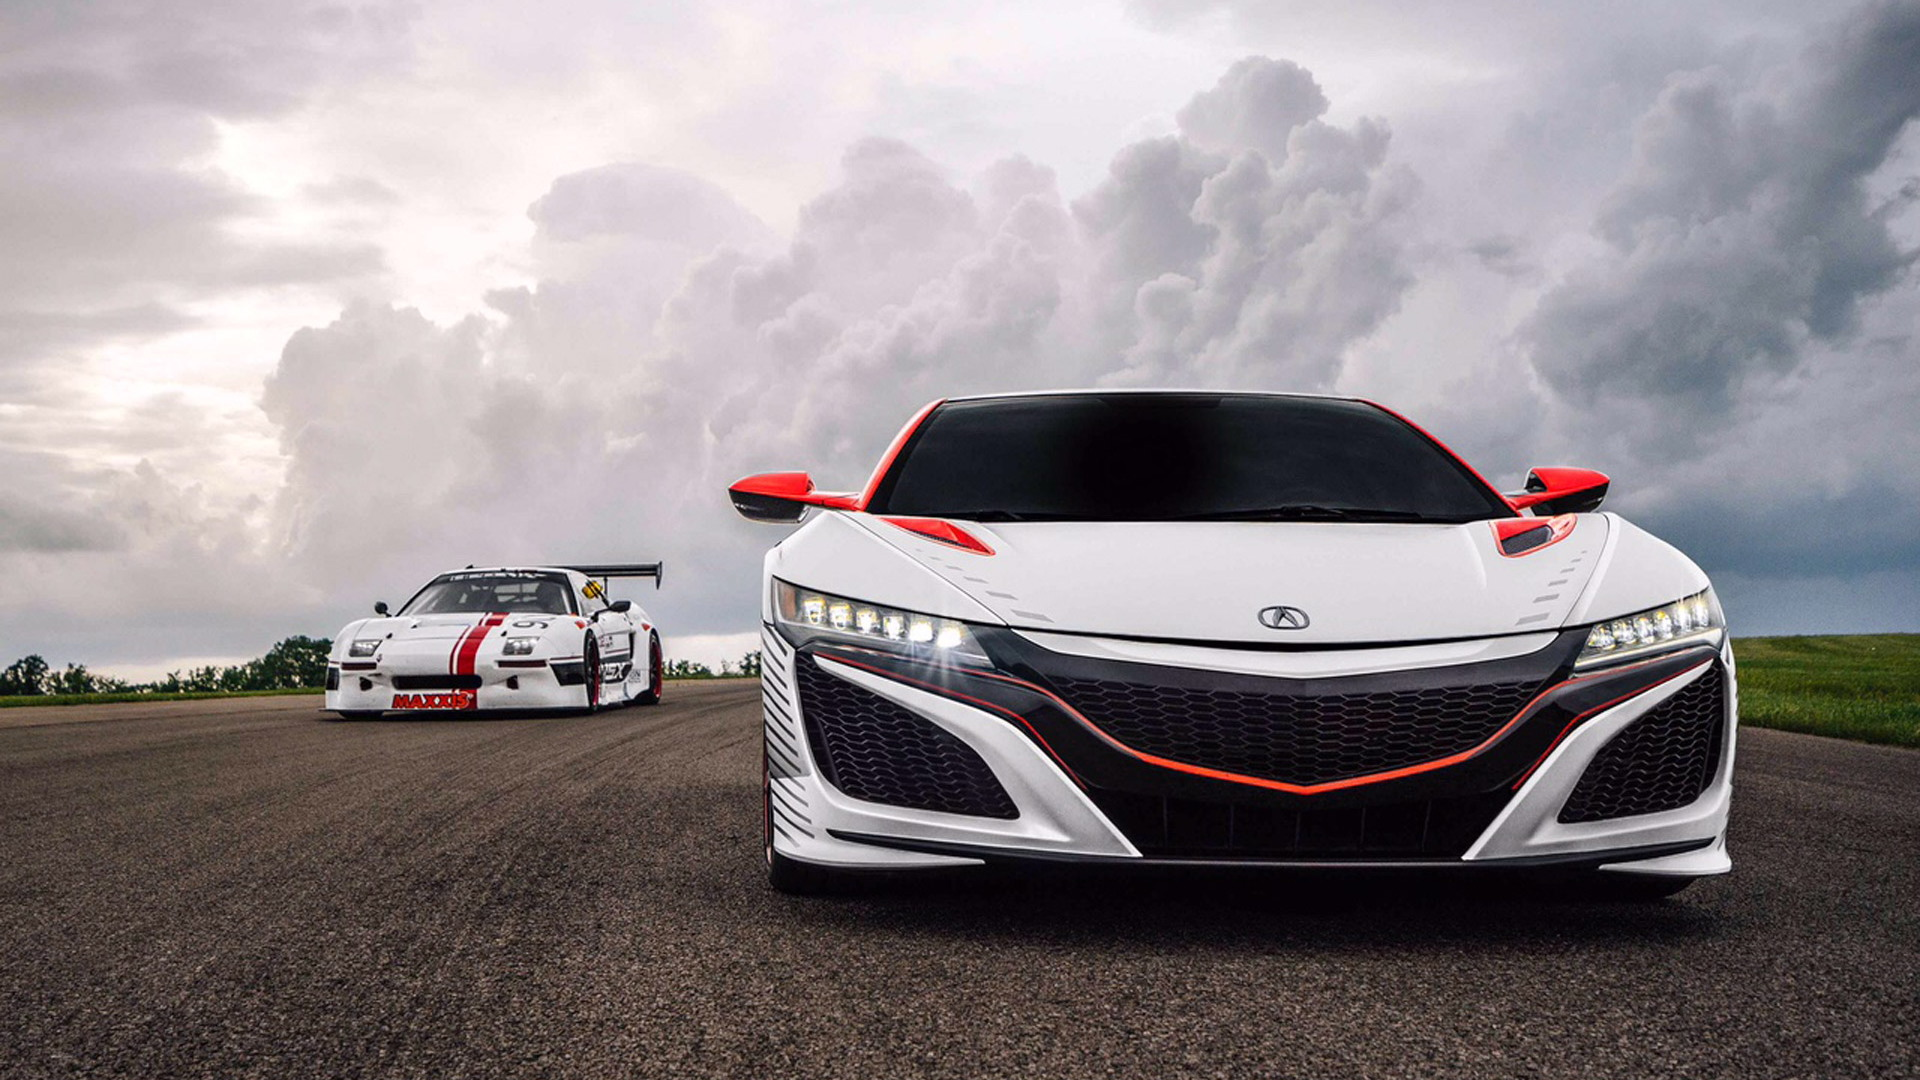 Acura NSX pace car for the 2015 Pikes Peak Hill Climb